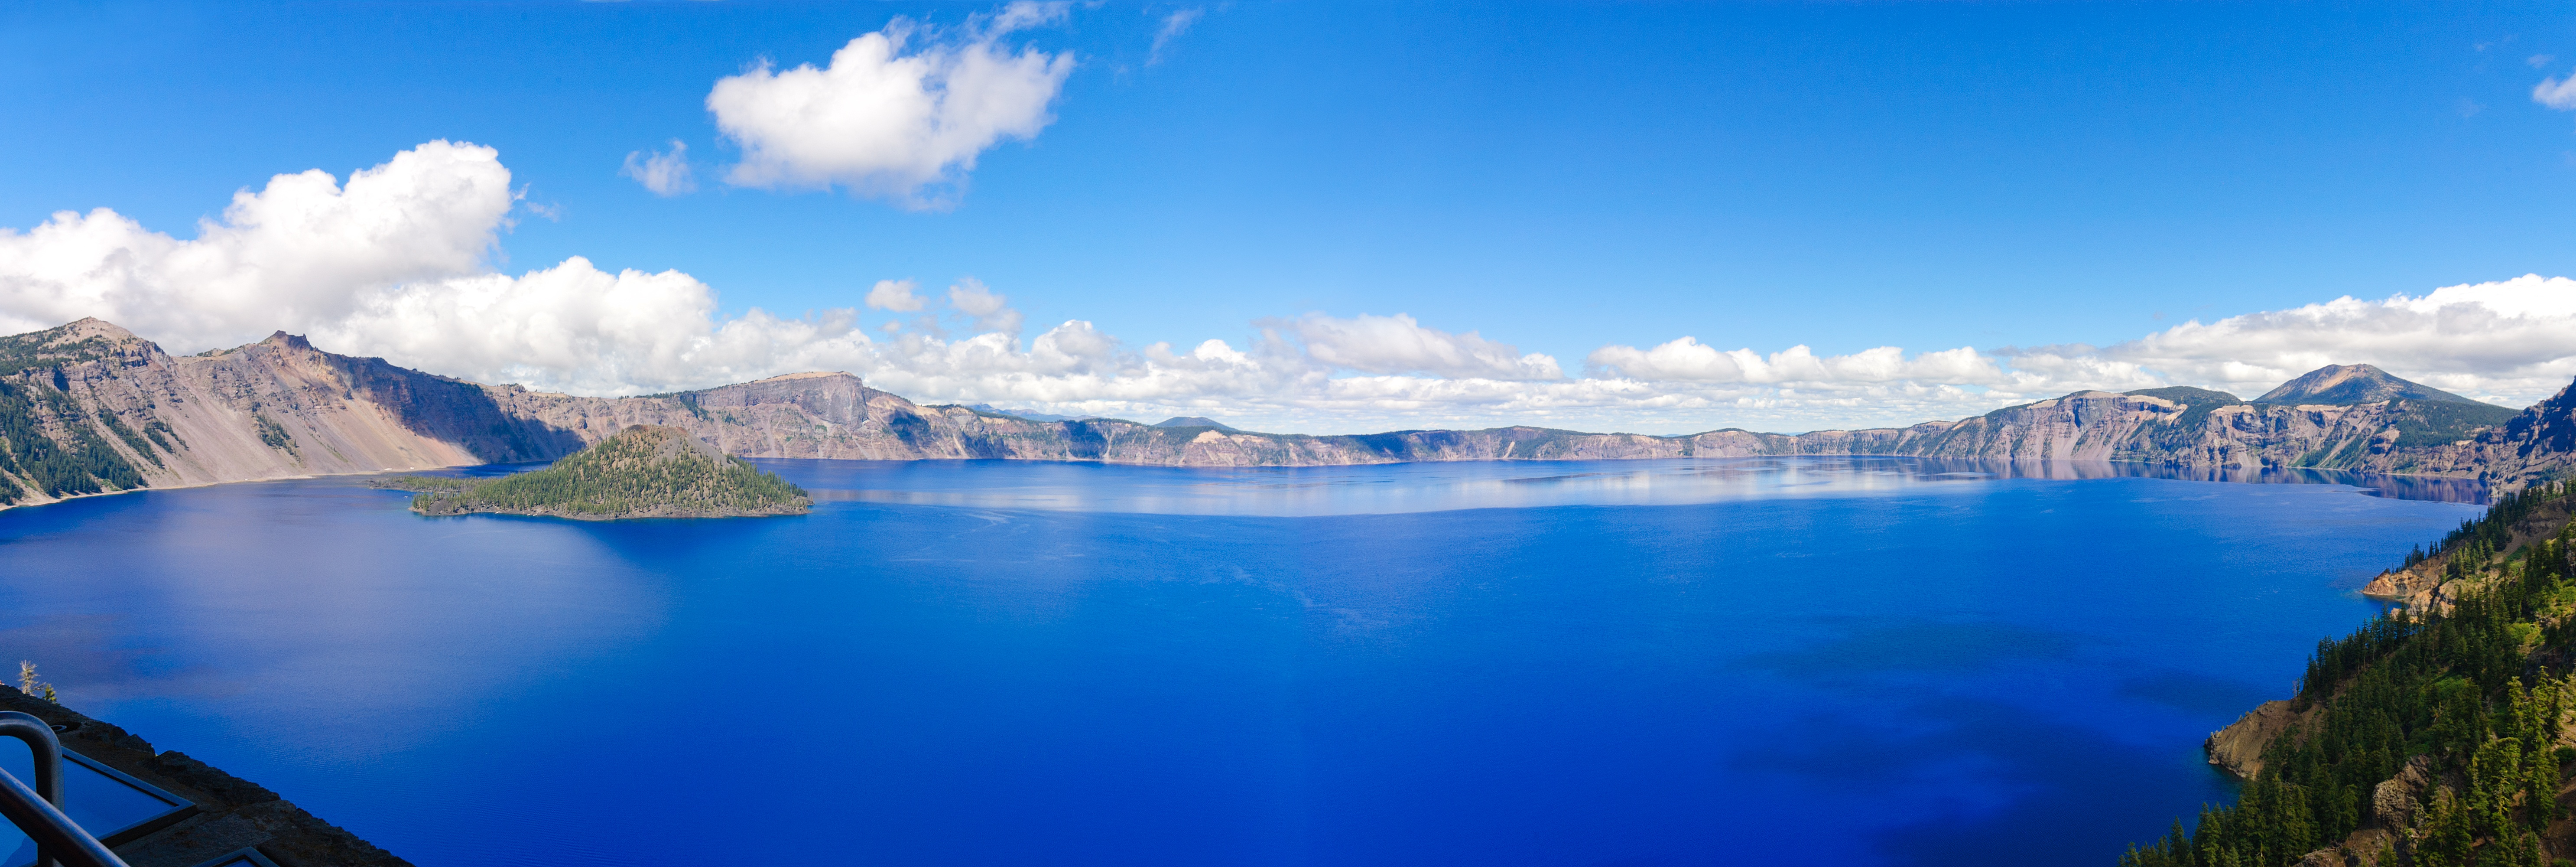 Visit-Oregon's-Crater-Lake-National-Park-while-You've-Got-MAIDS-Cleans-Your-Portland-Area-Home.jpg